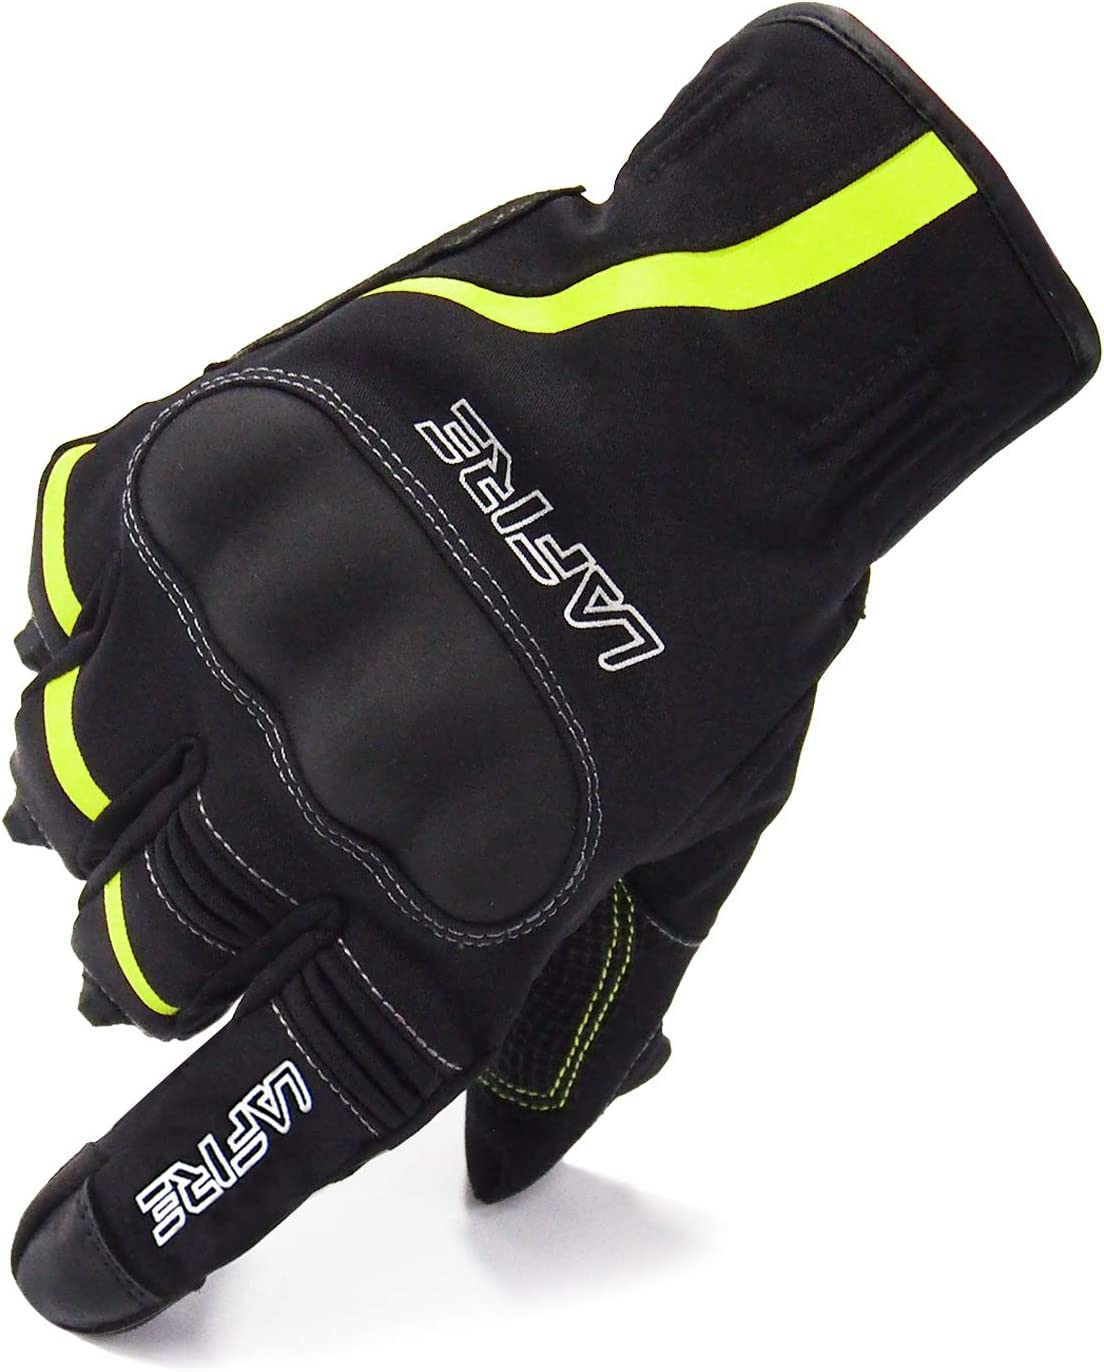 Winter Max 87% OFF Nippon regular agency Thickened Motorcycle Gloves Full Waterproof Soft Finger